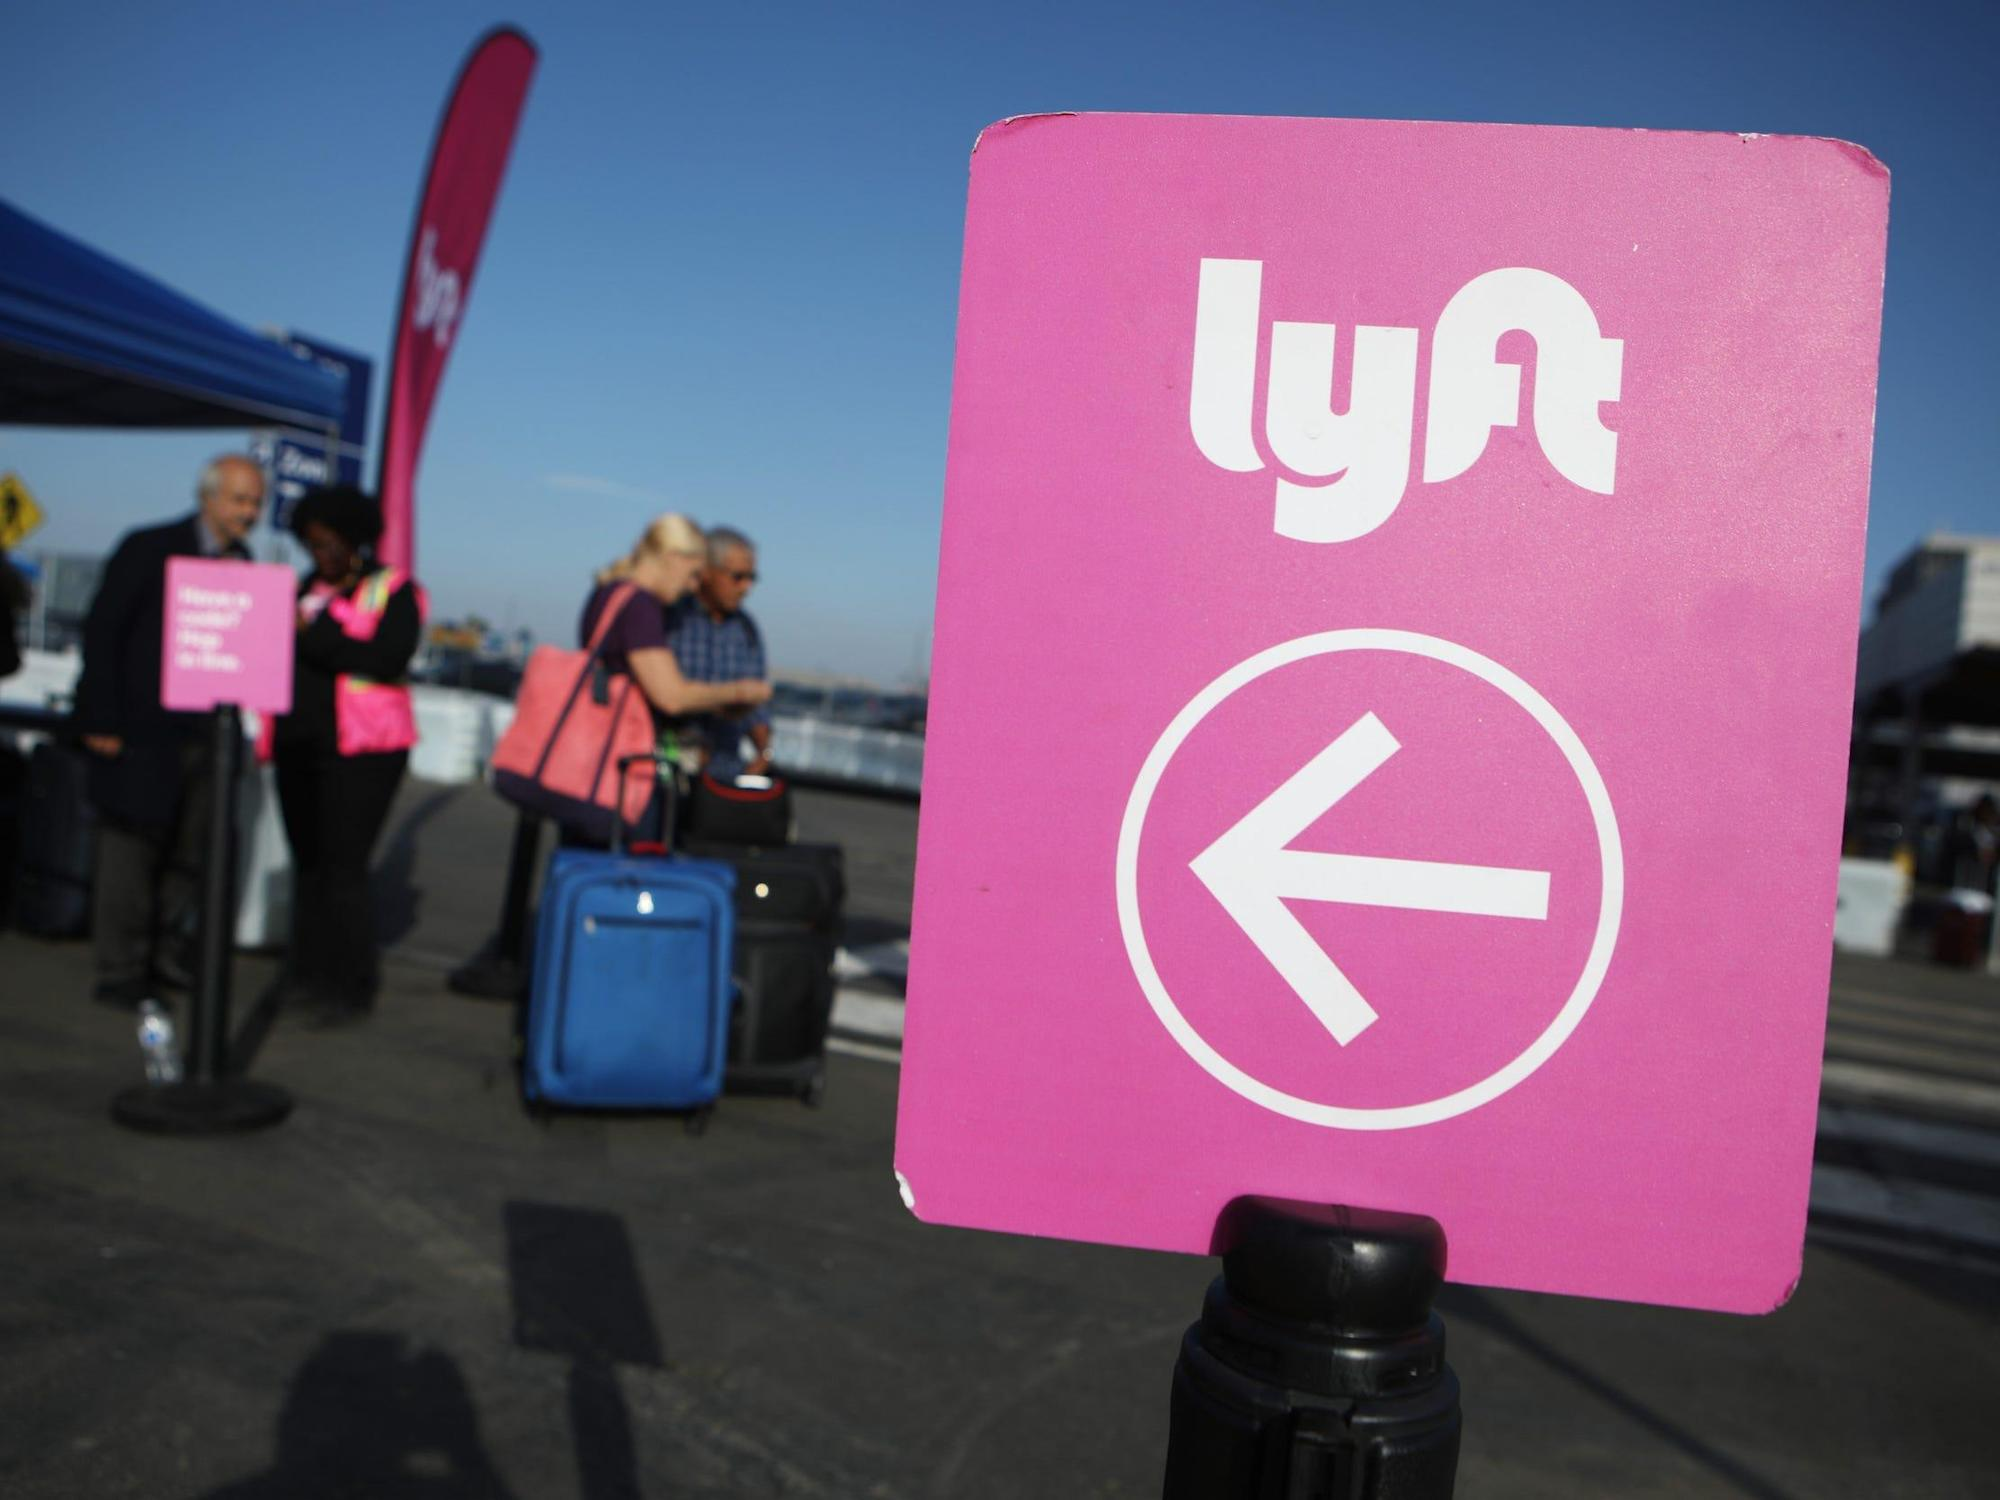 You can now book a Lyft ride without using the app - just like a taxi